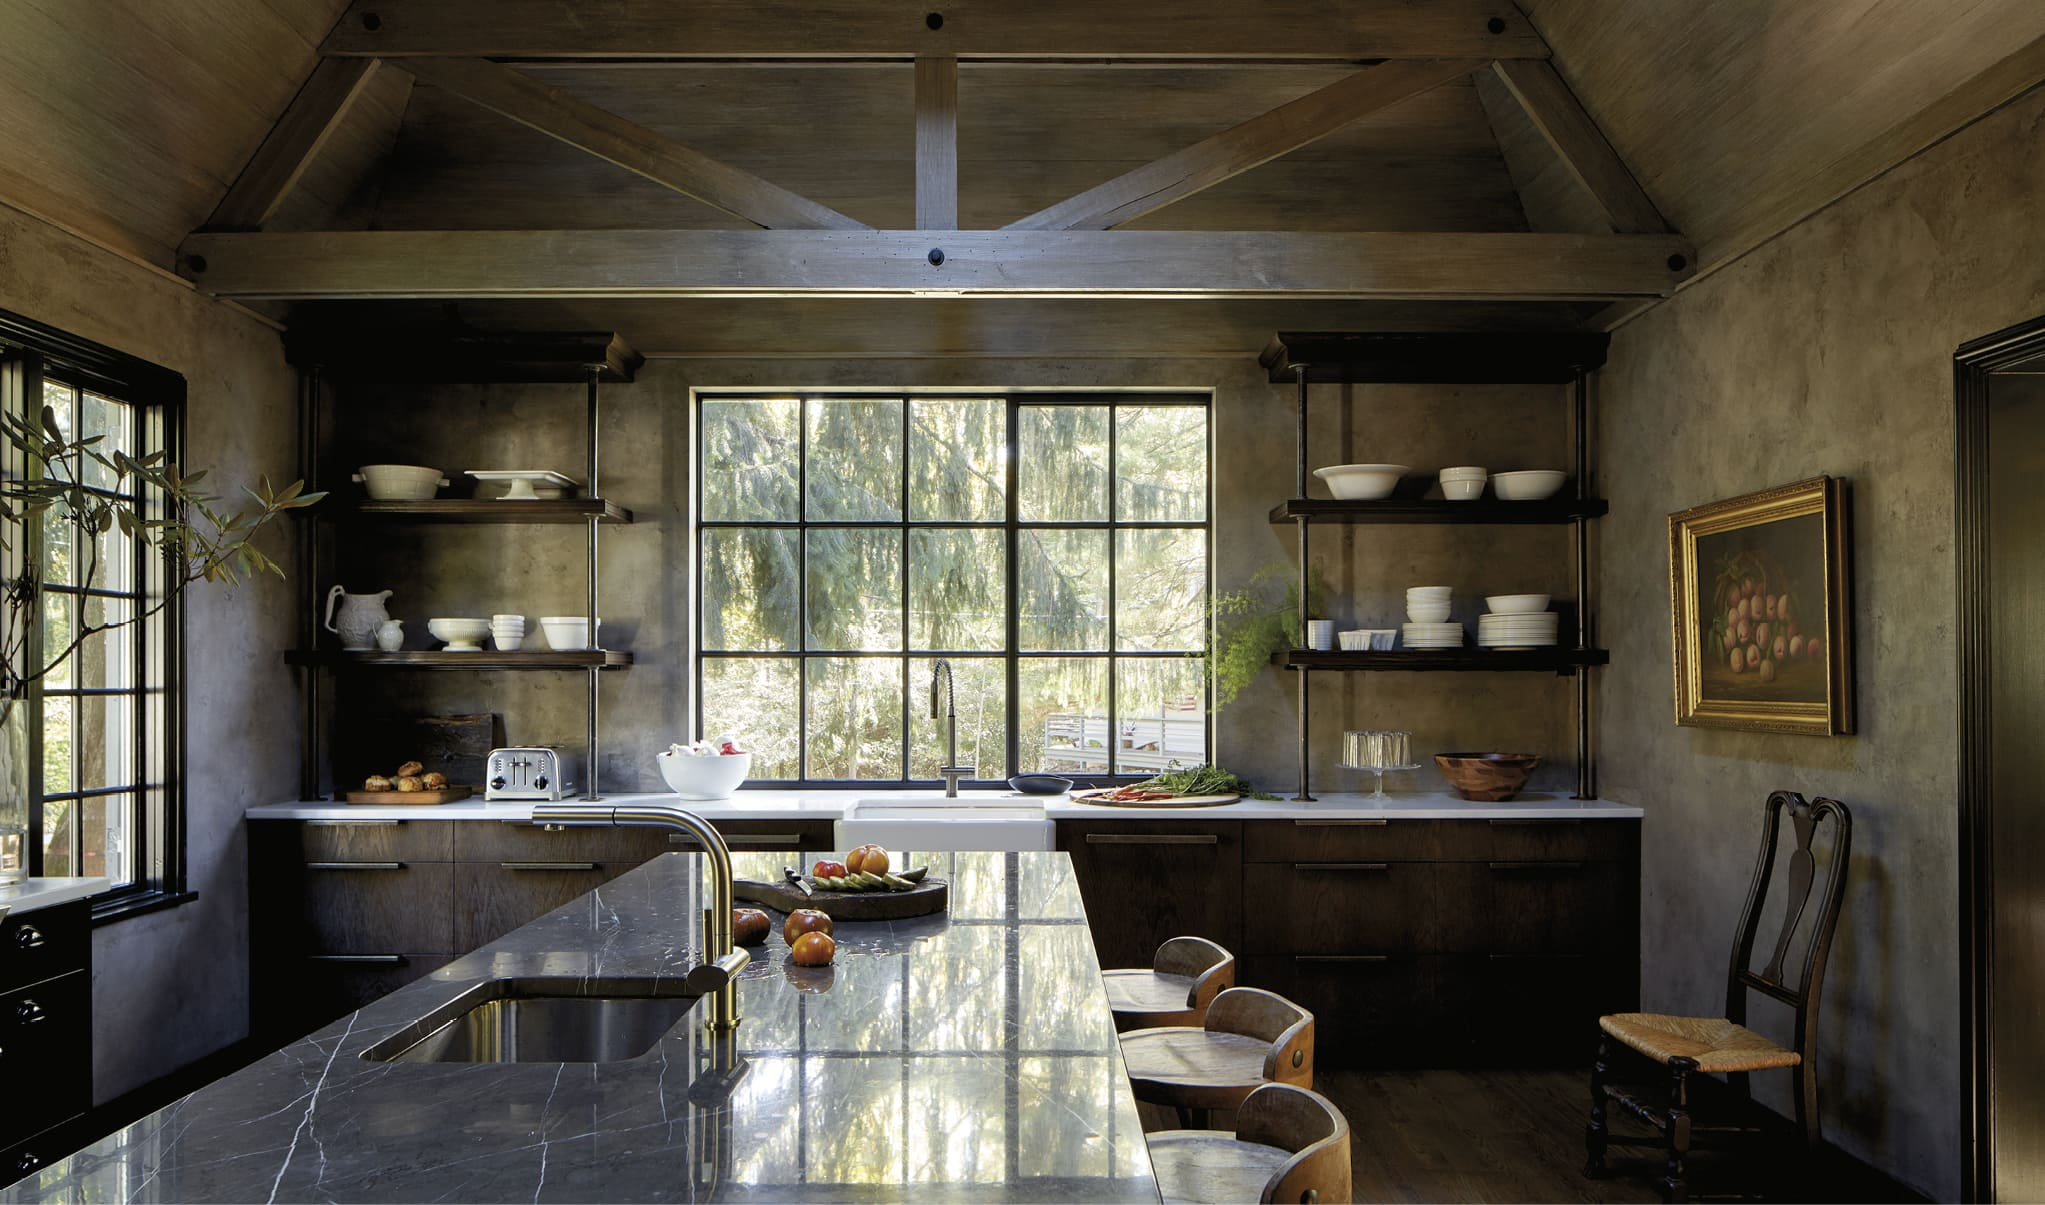 20 Top Interior Design Firms In Washington You'll Love_10 top interior design firms in washington Top Interior Design Firms in Washington 20 Top Interior Design Firms In Washington Youll Love 10